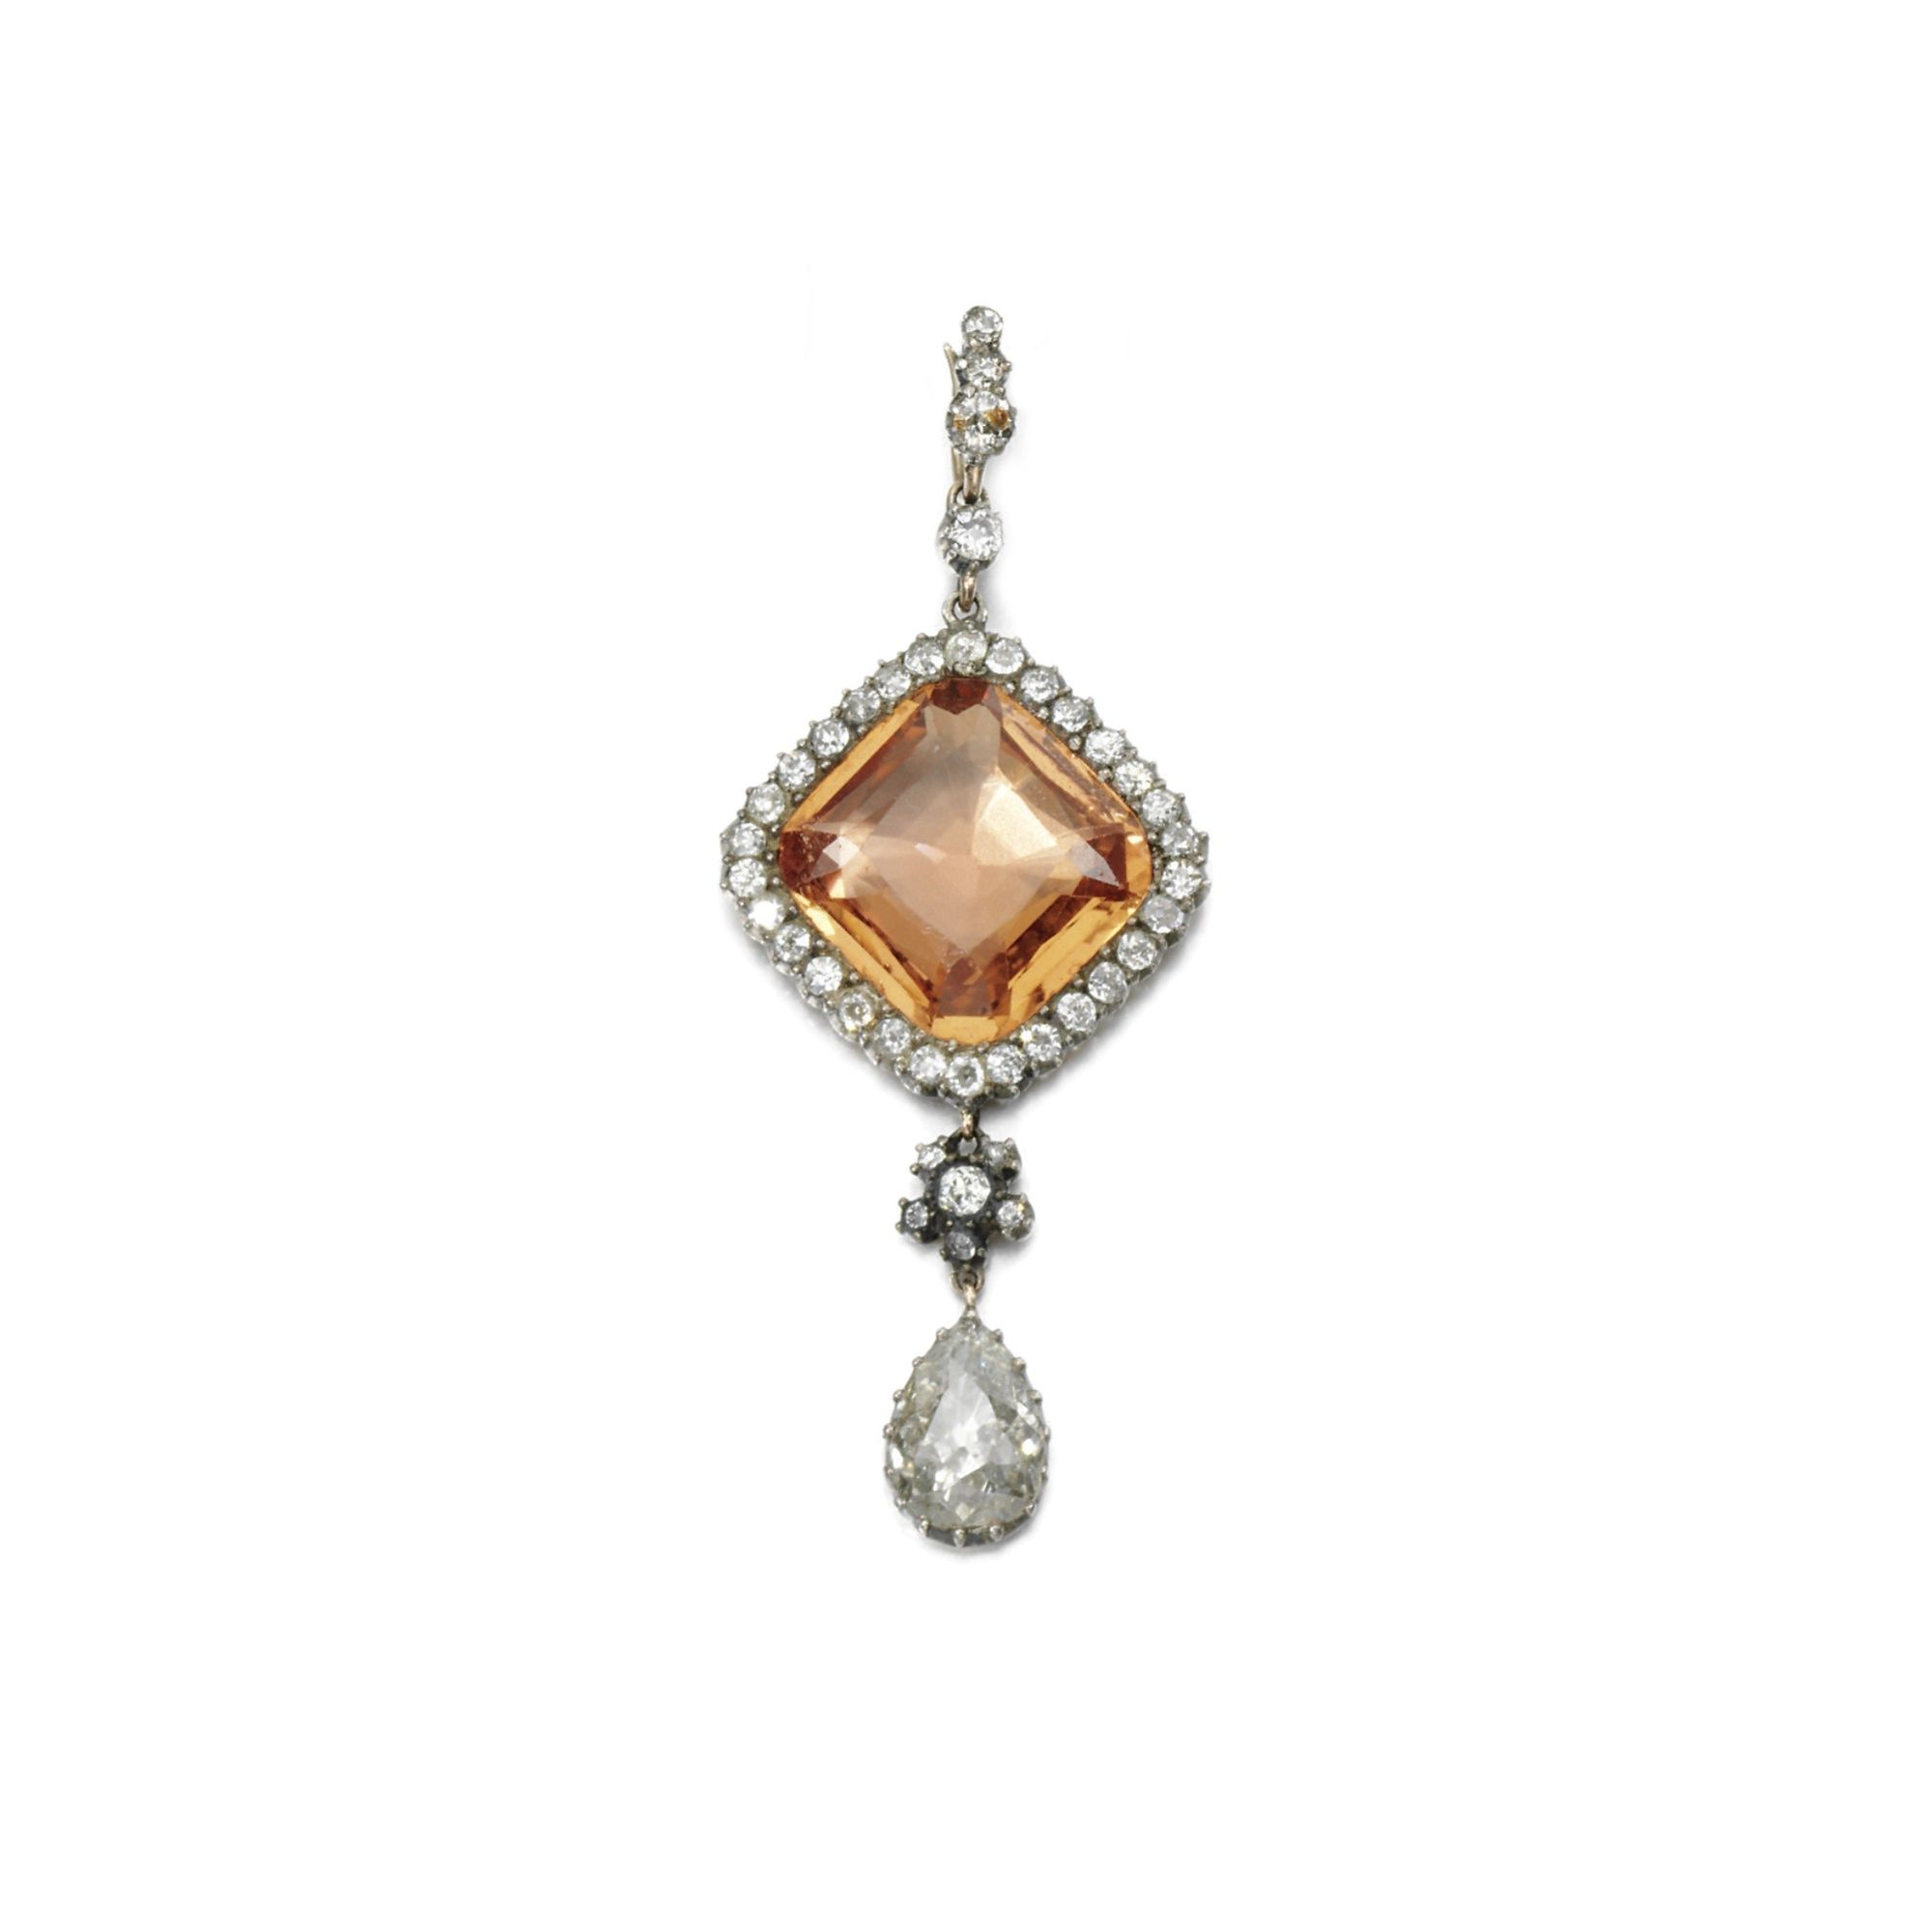 Topaz and diamond pendant centring on a mixedcut topaz within a